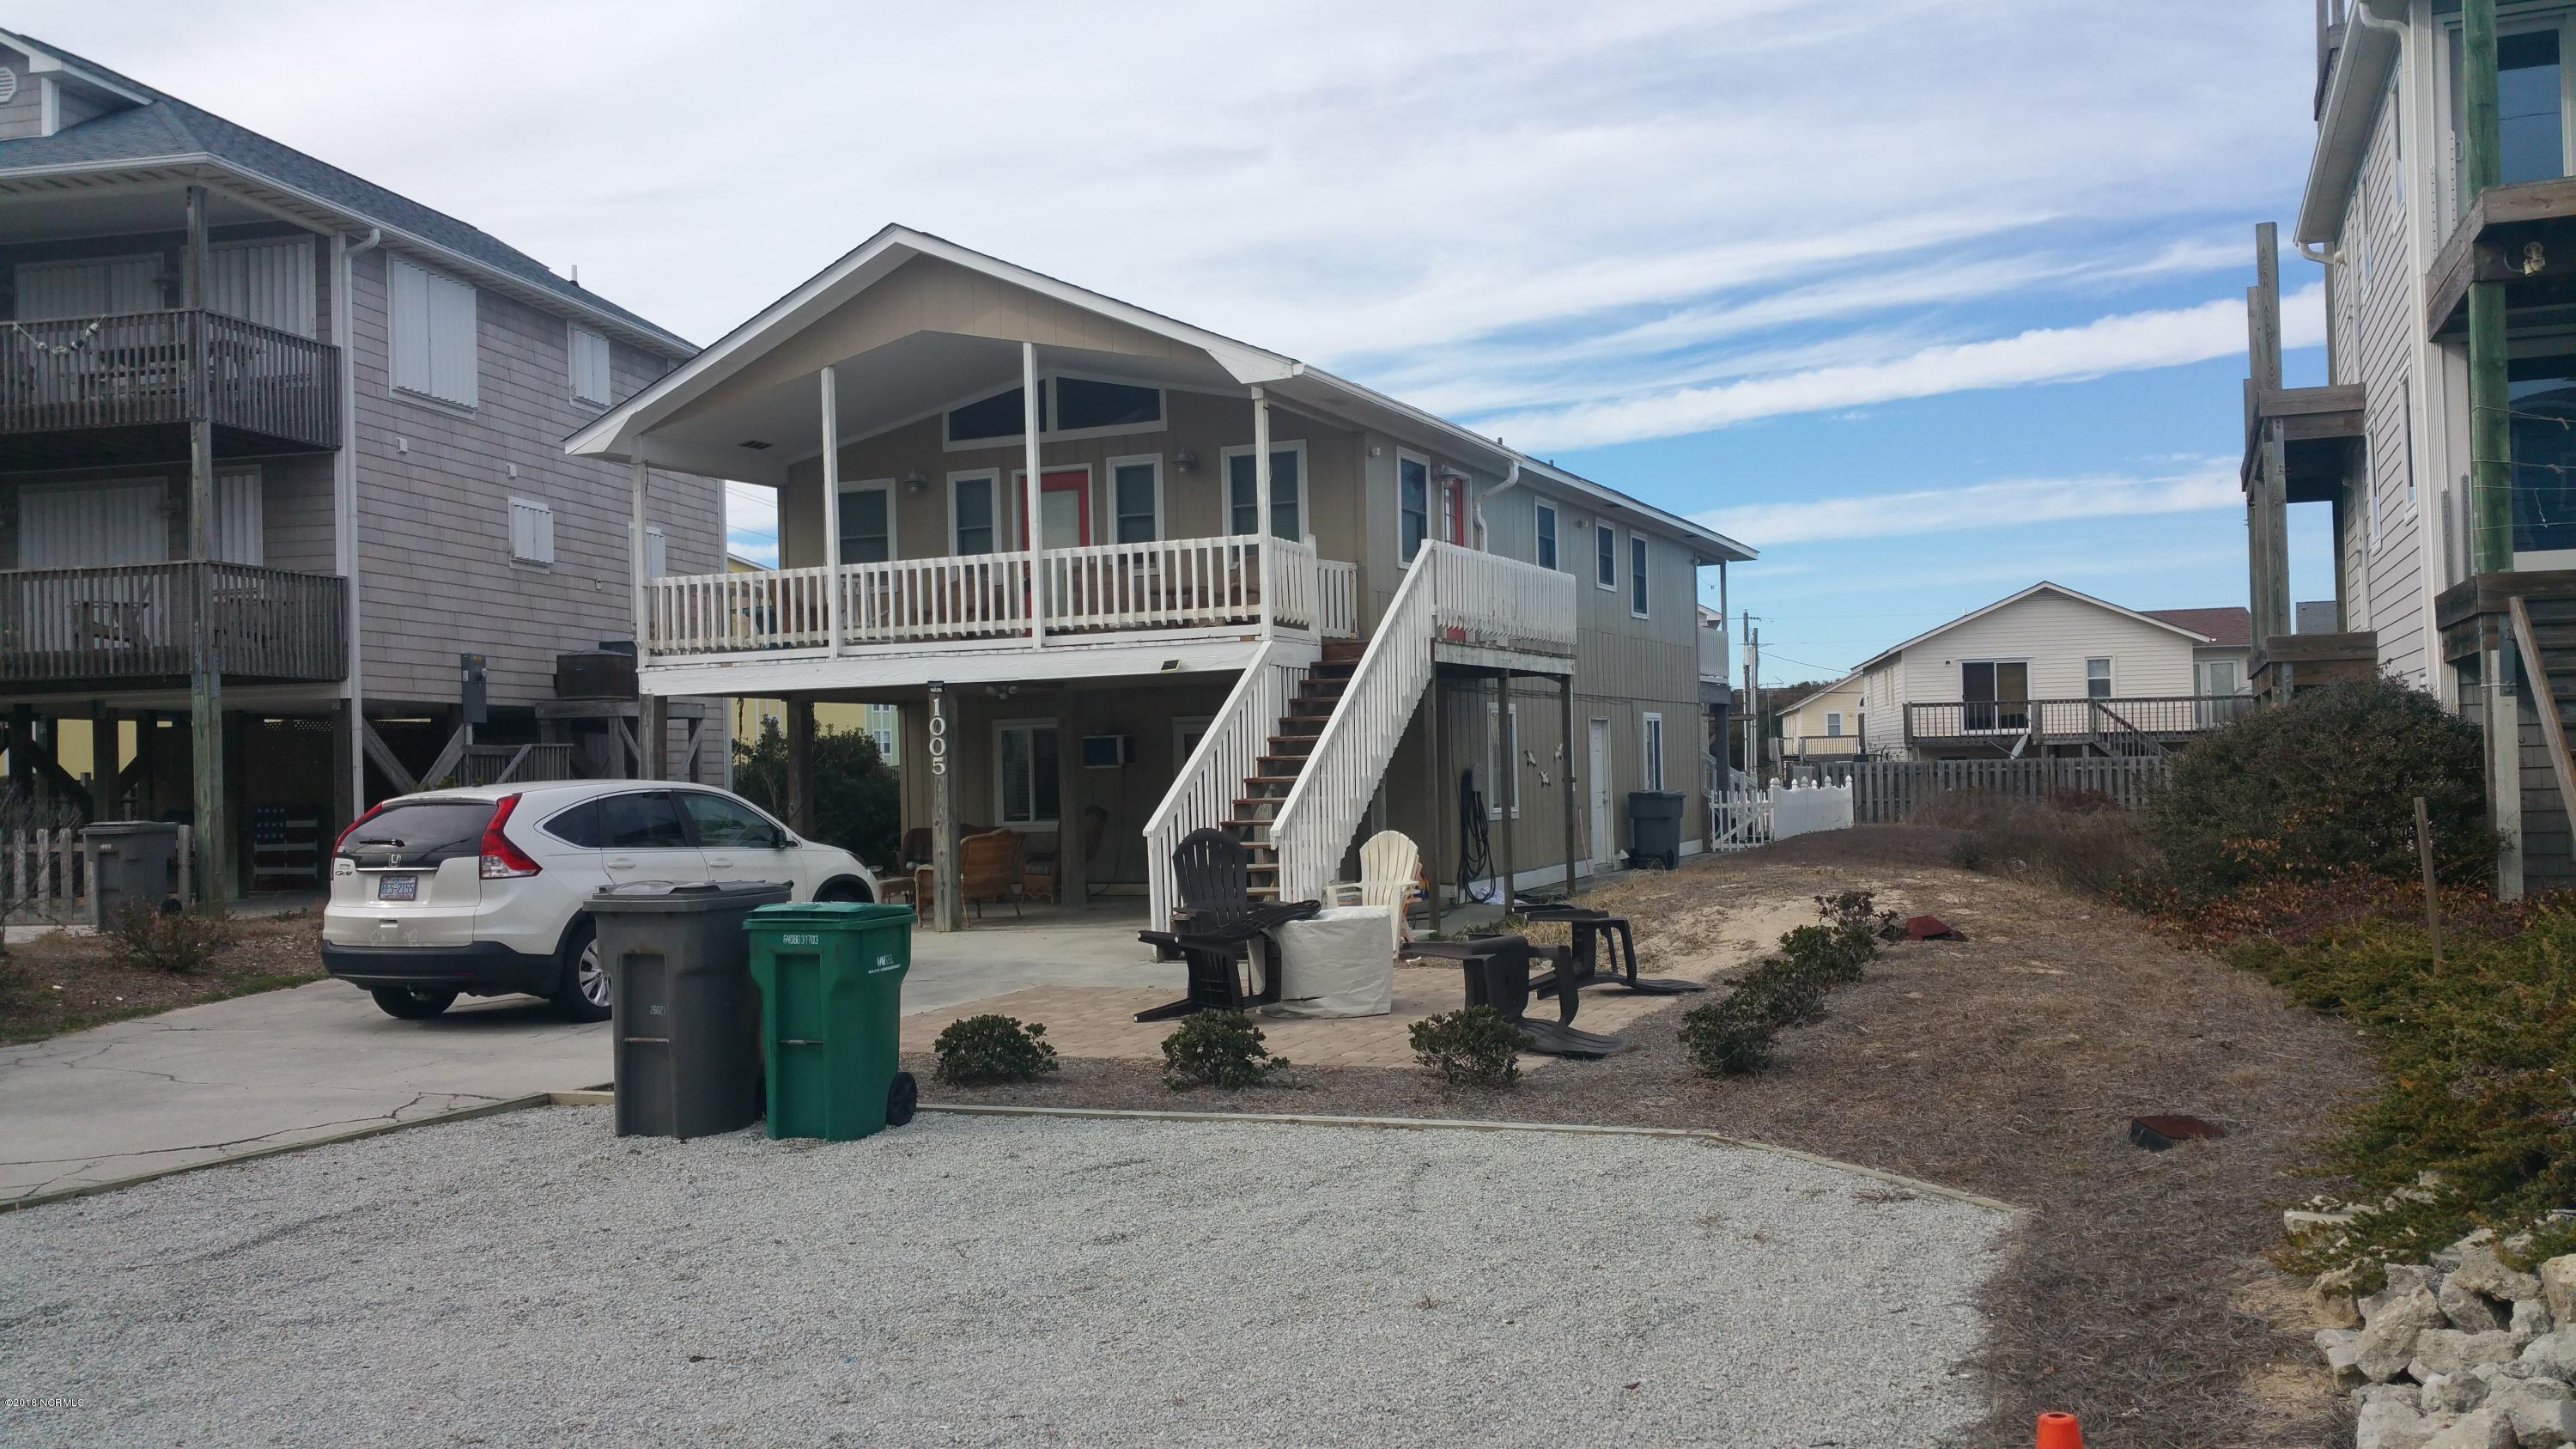 Property for sale at 1005 N Shore Drive Unit: Upper, Surf City,  NC 28445